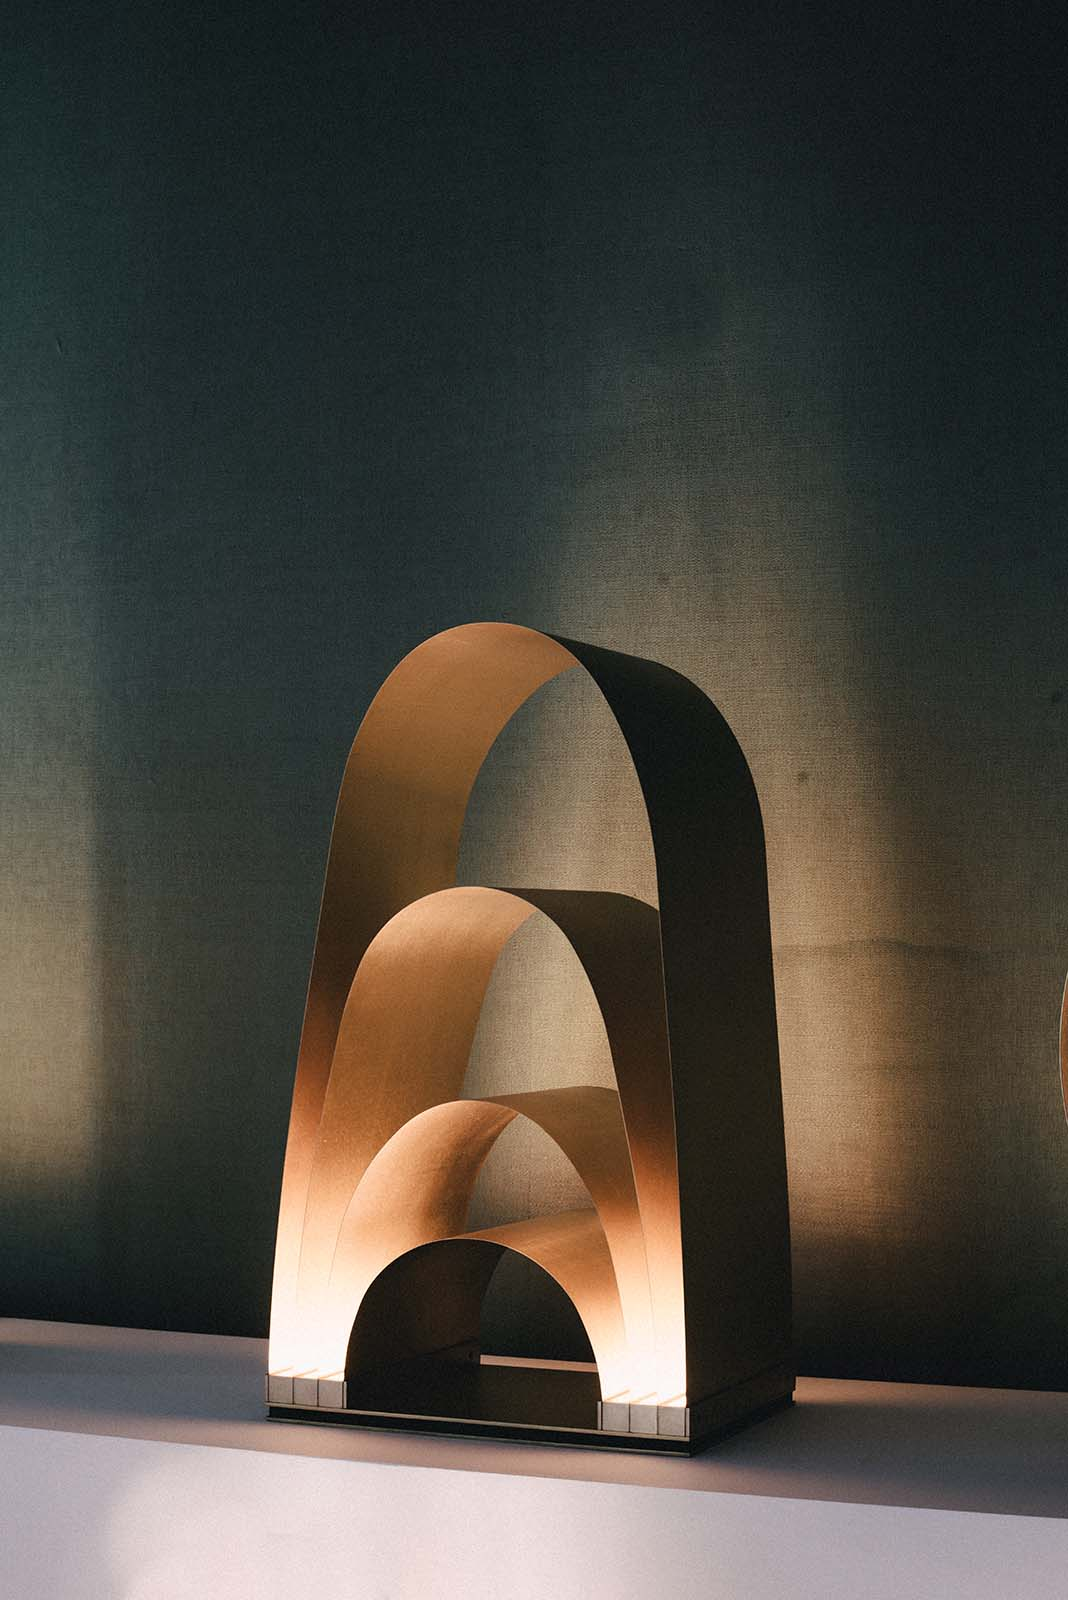 Lamp by Hector Esrawe.